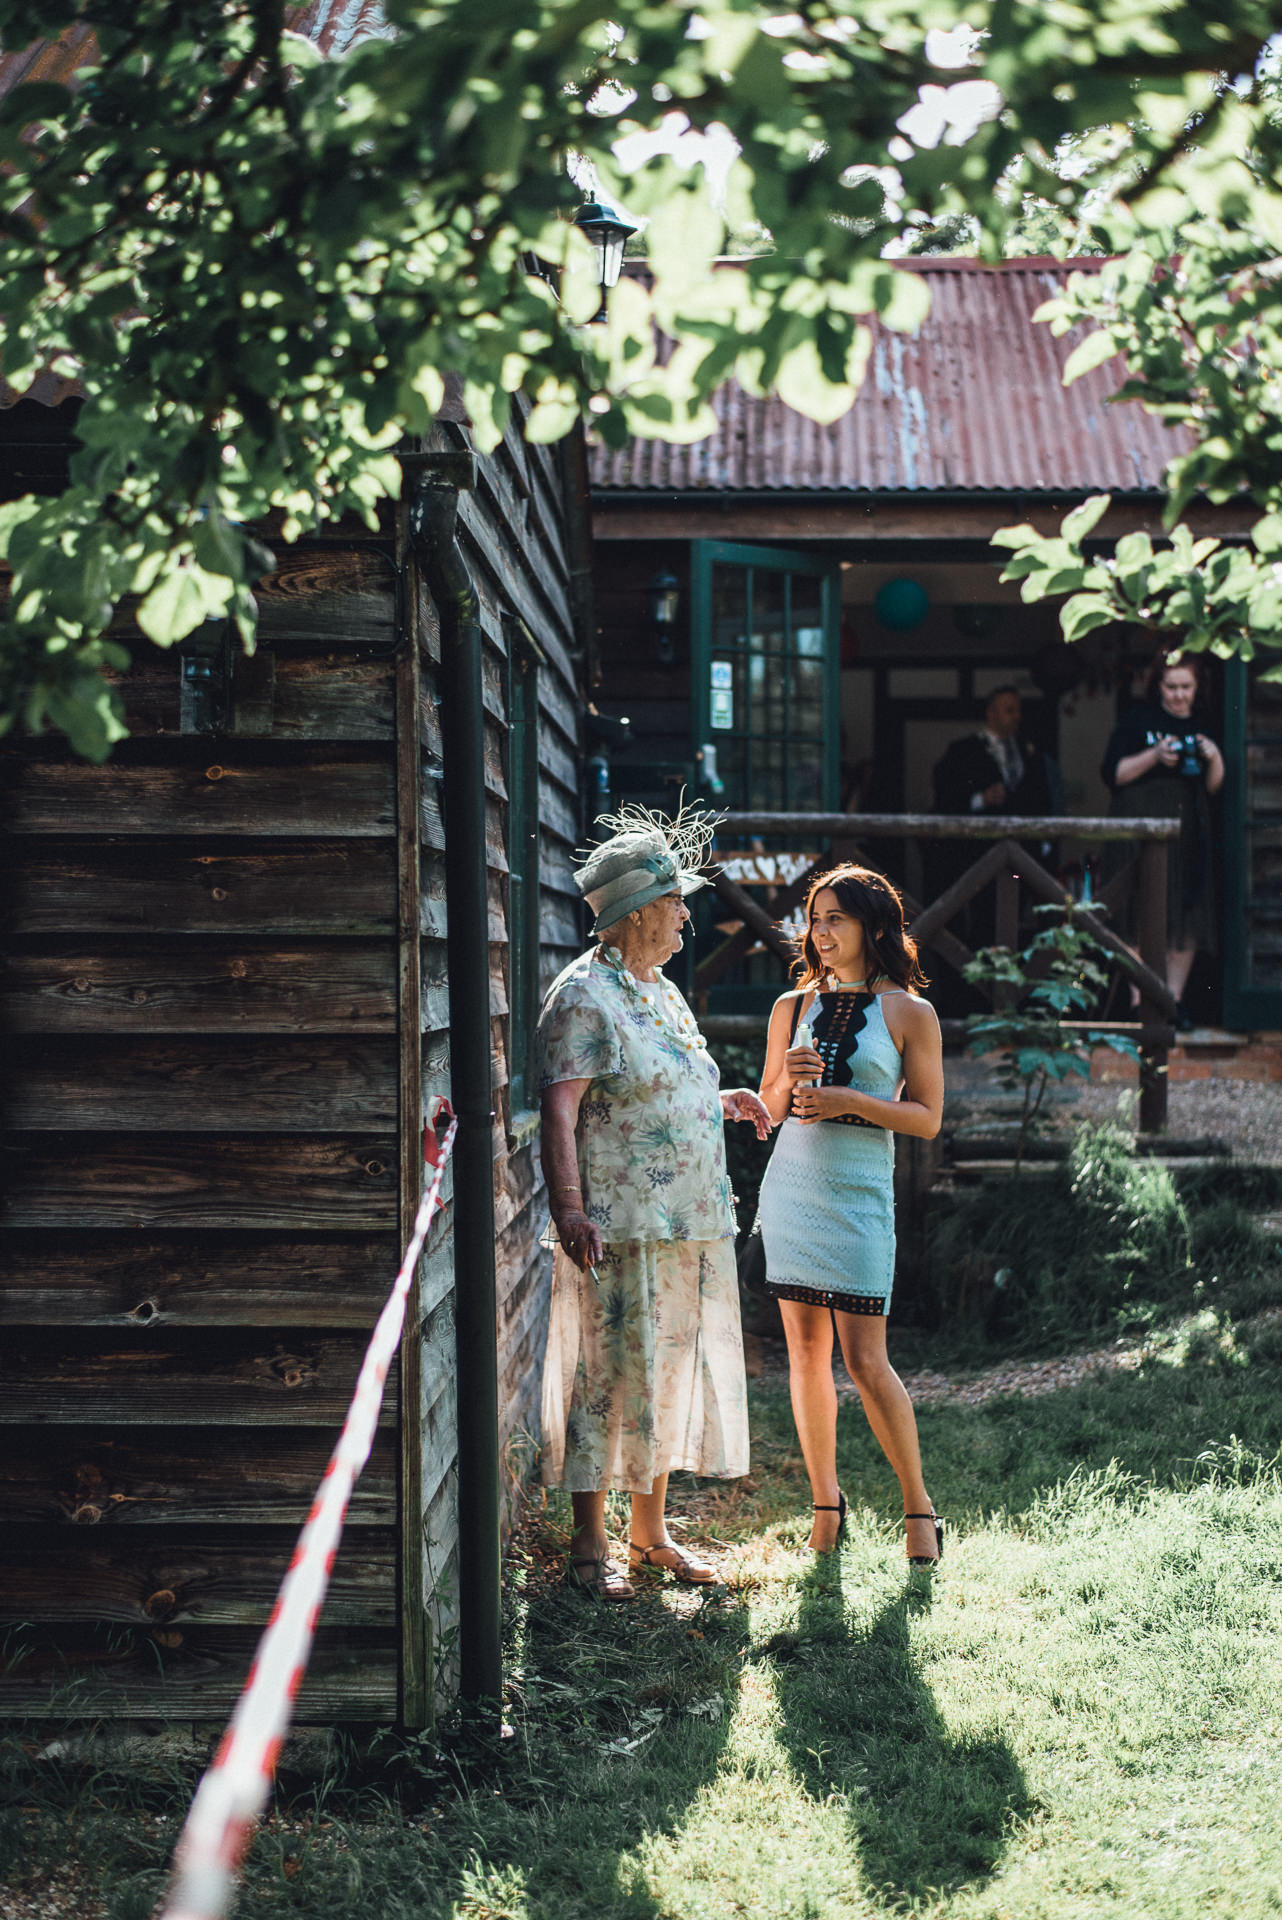 Two ladies standing outside in the sun. Creative wedding photography ideas